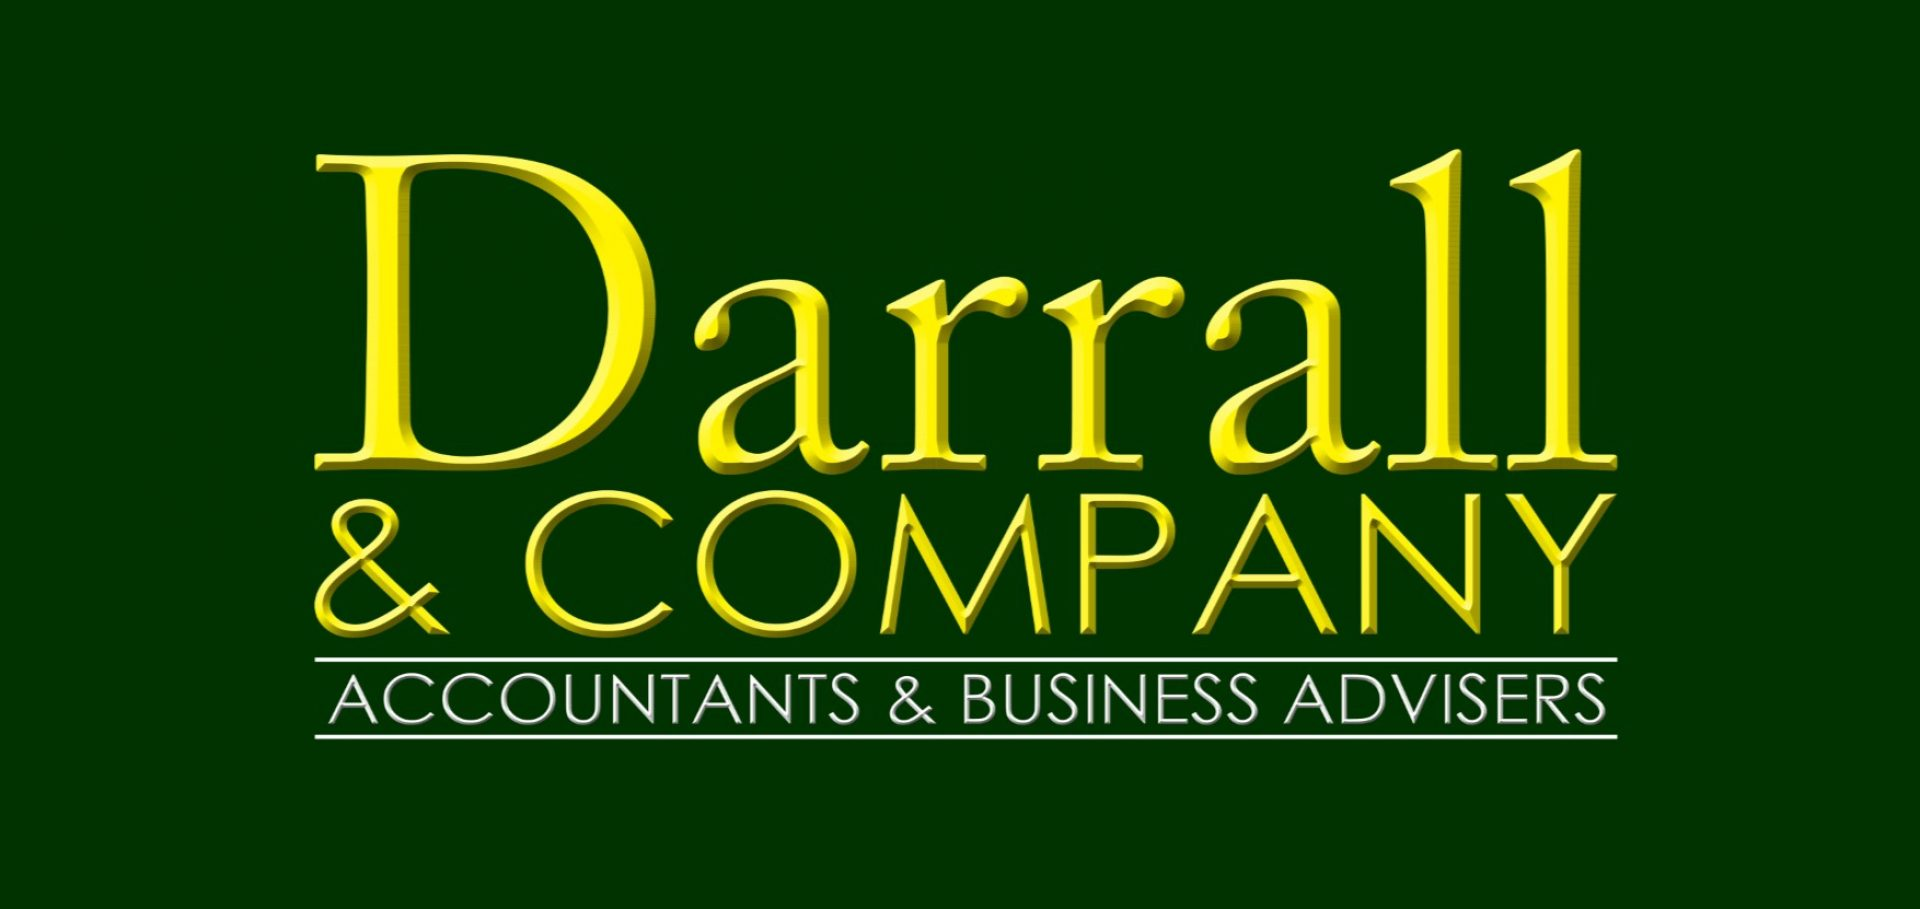 Darrall and Company – Accountants & Business Services